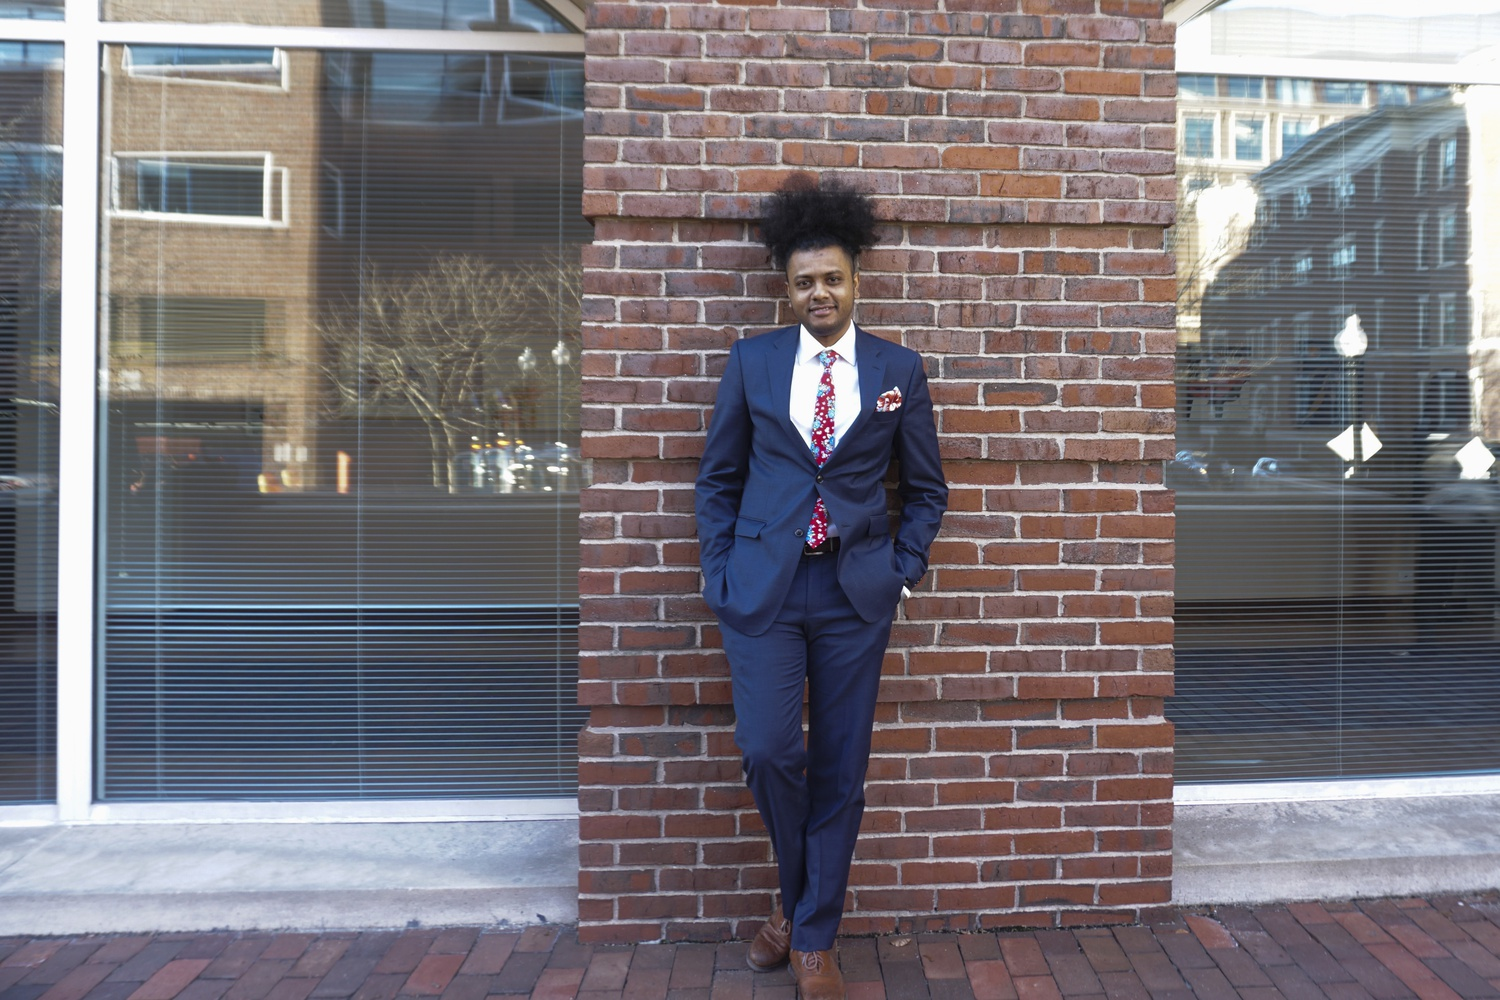 Suraj is a postdoctoral fellow at the Initiative for Institutional Anti-racism and Accountability, Shorenstein Center on Media, Politics and Public Policy at the Harvard Kennedy School.